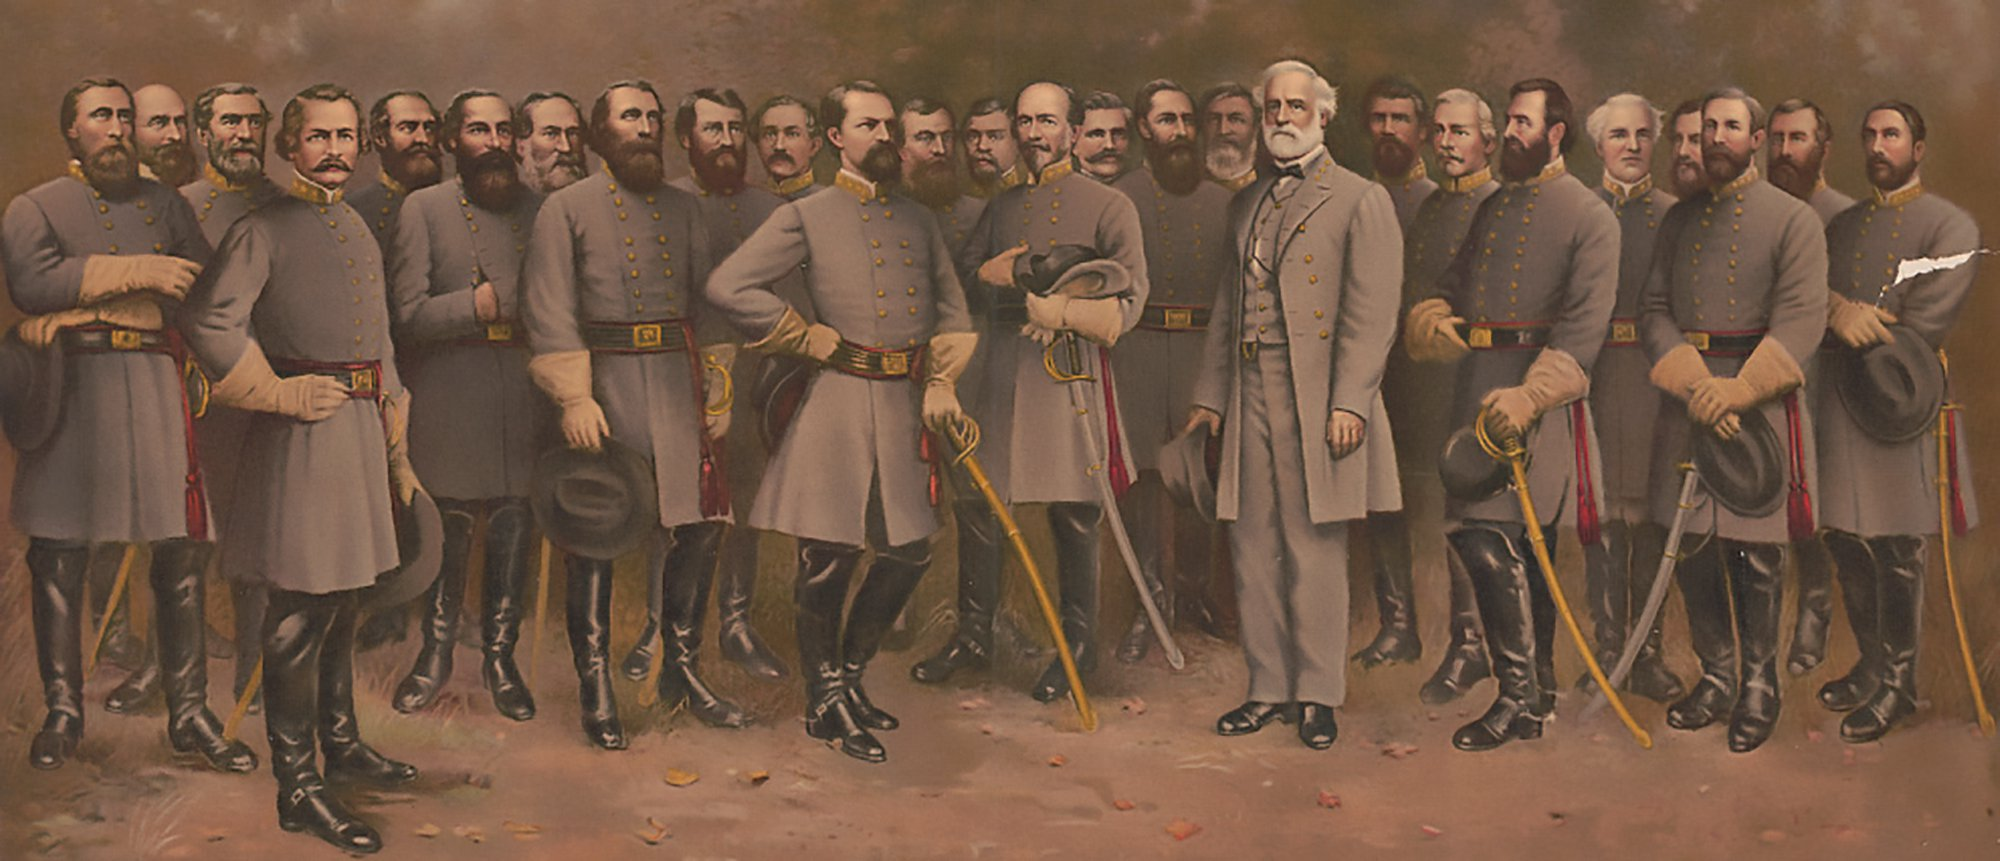 39 General Robert E Lee with the most famous Confederate CSA Army Generals